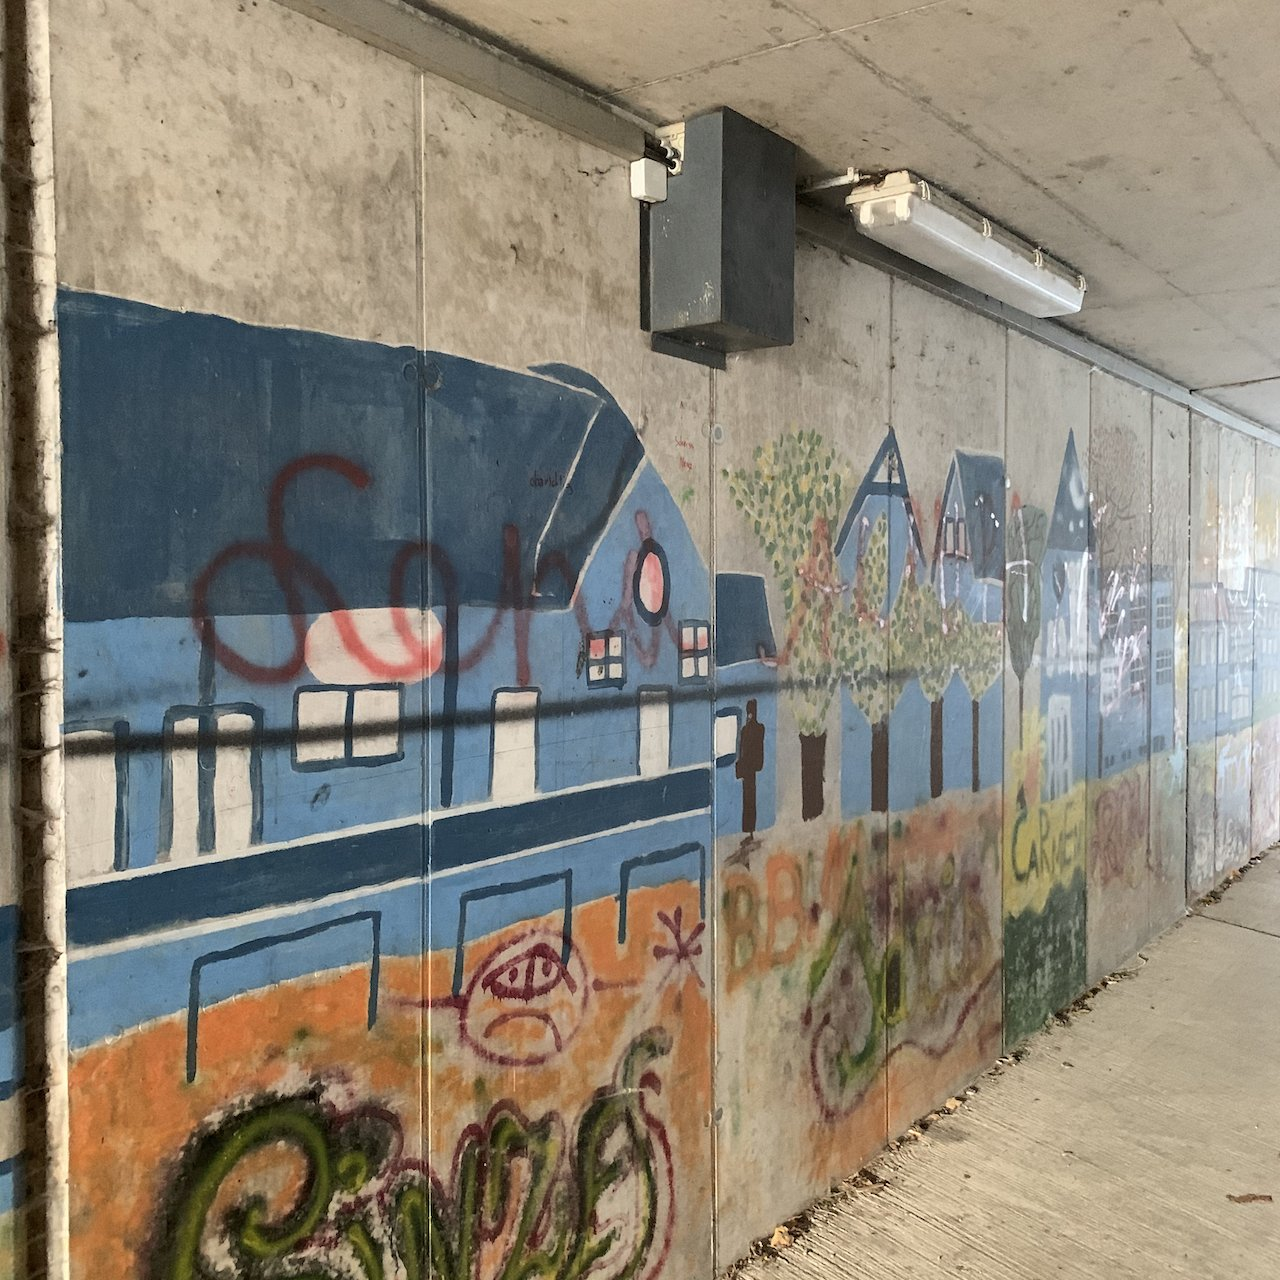 Geocache under the rail lines - not too obvious at first look - itstartswithacoffee.com  #geocache #geocaching  #geocachingAustria #geocachingAT #electricalbox #electricaljunctionbox #wallart